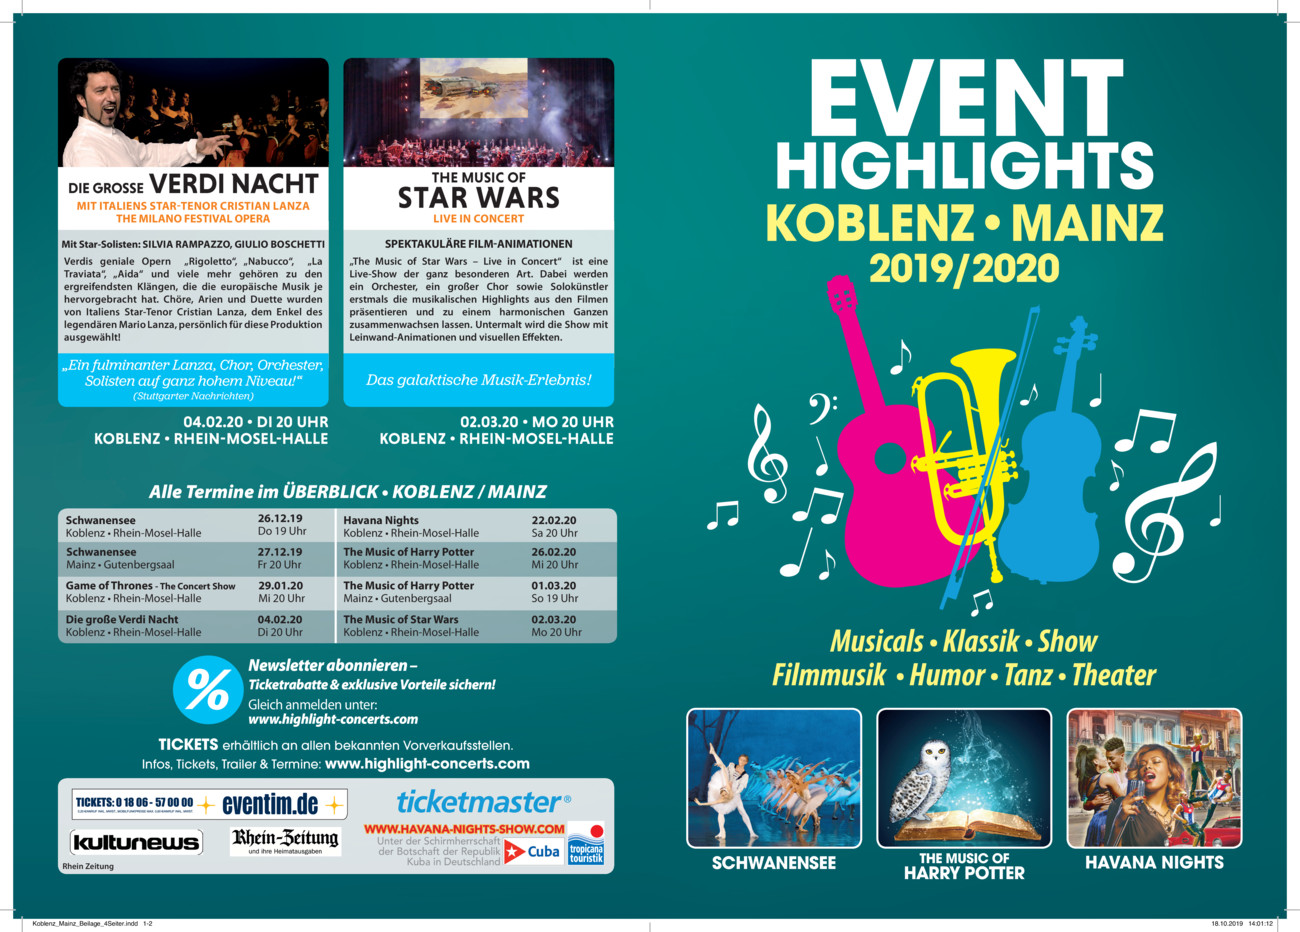 EVENT HIGHLIGHTS 2019/2020